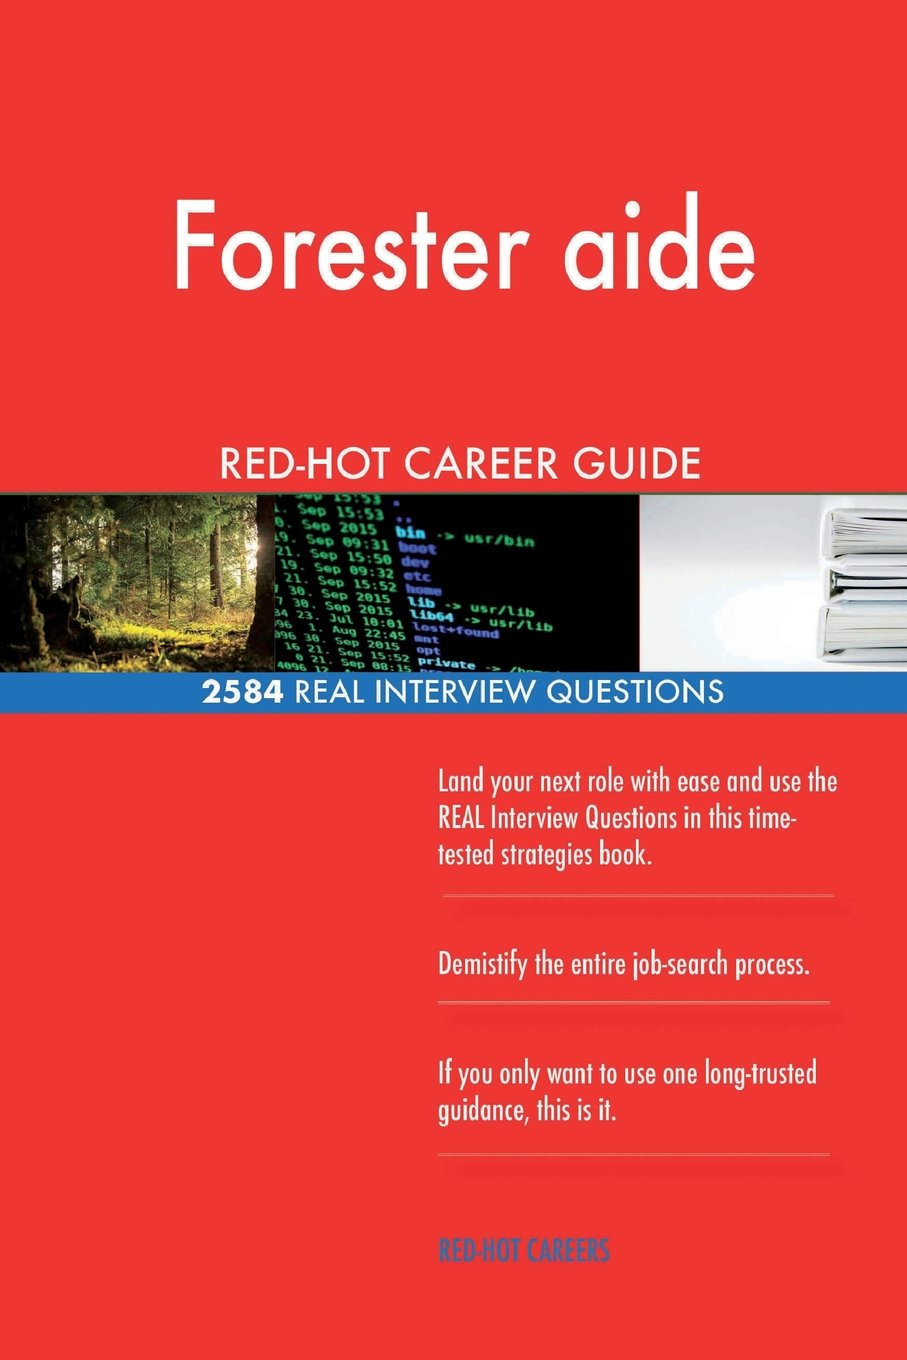 Forester aide RED-HOT Career Guide